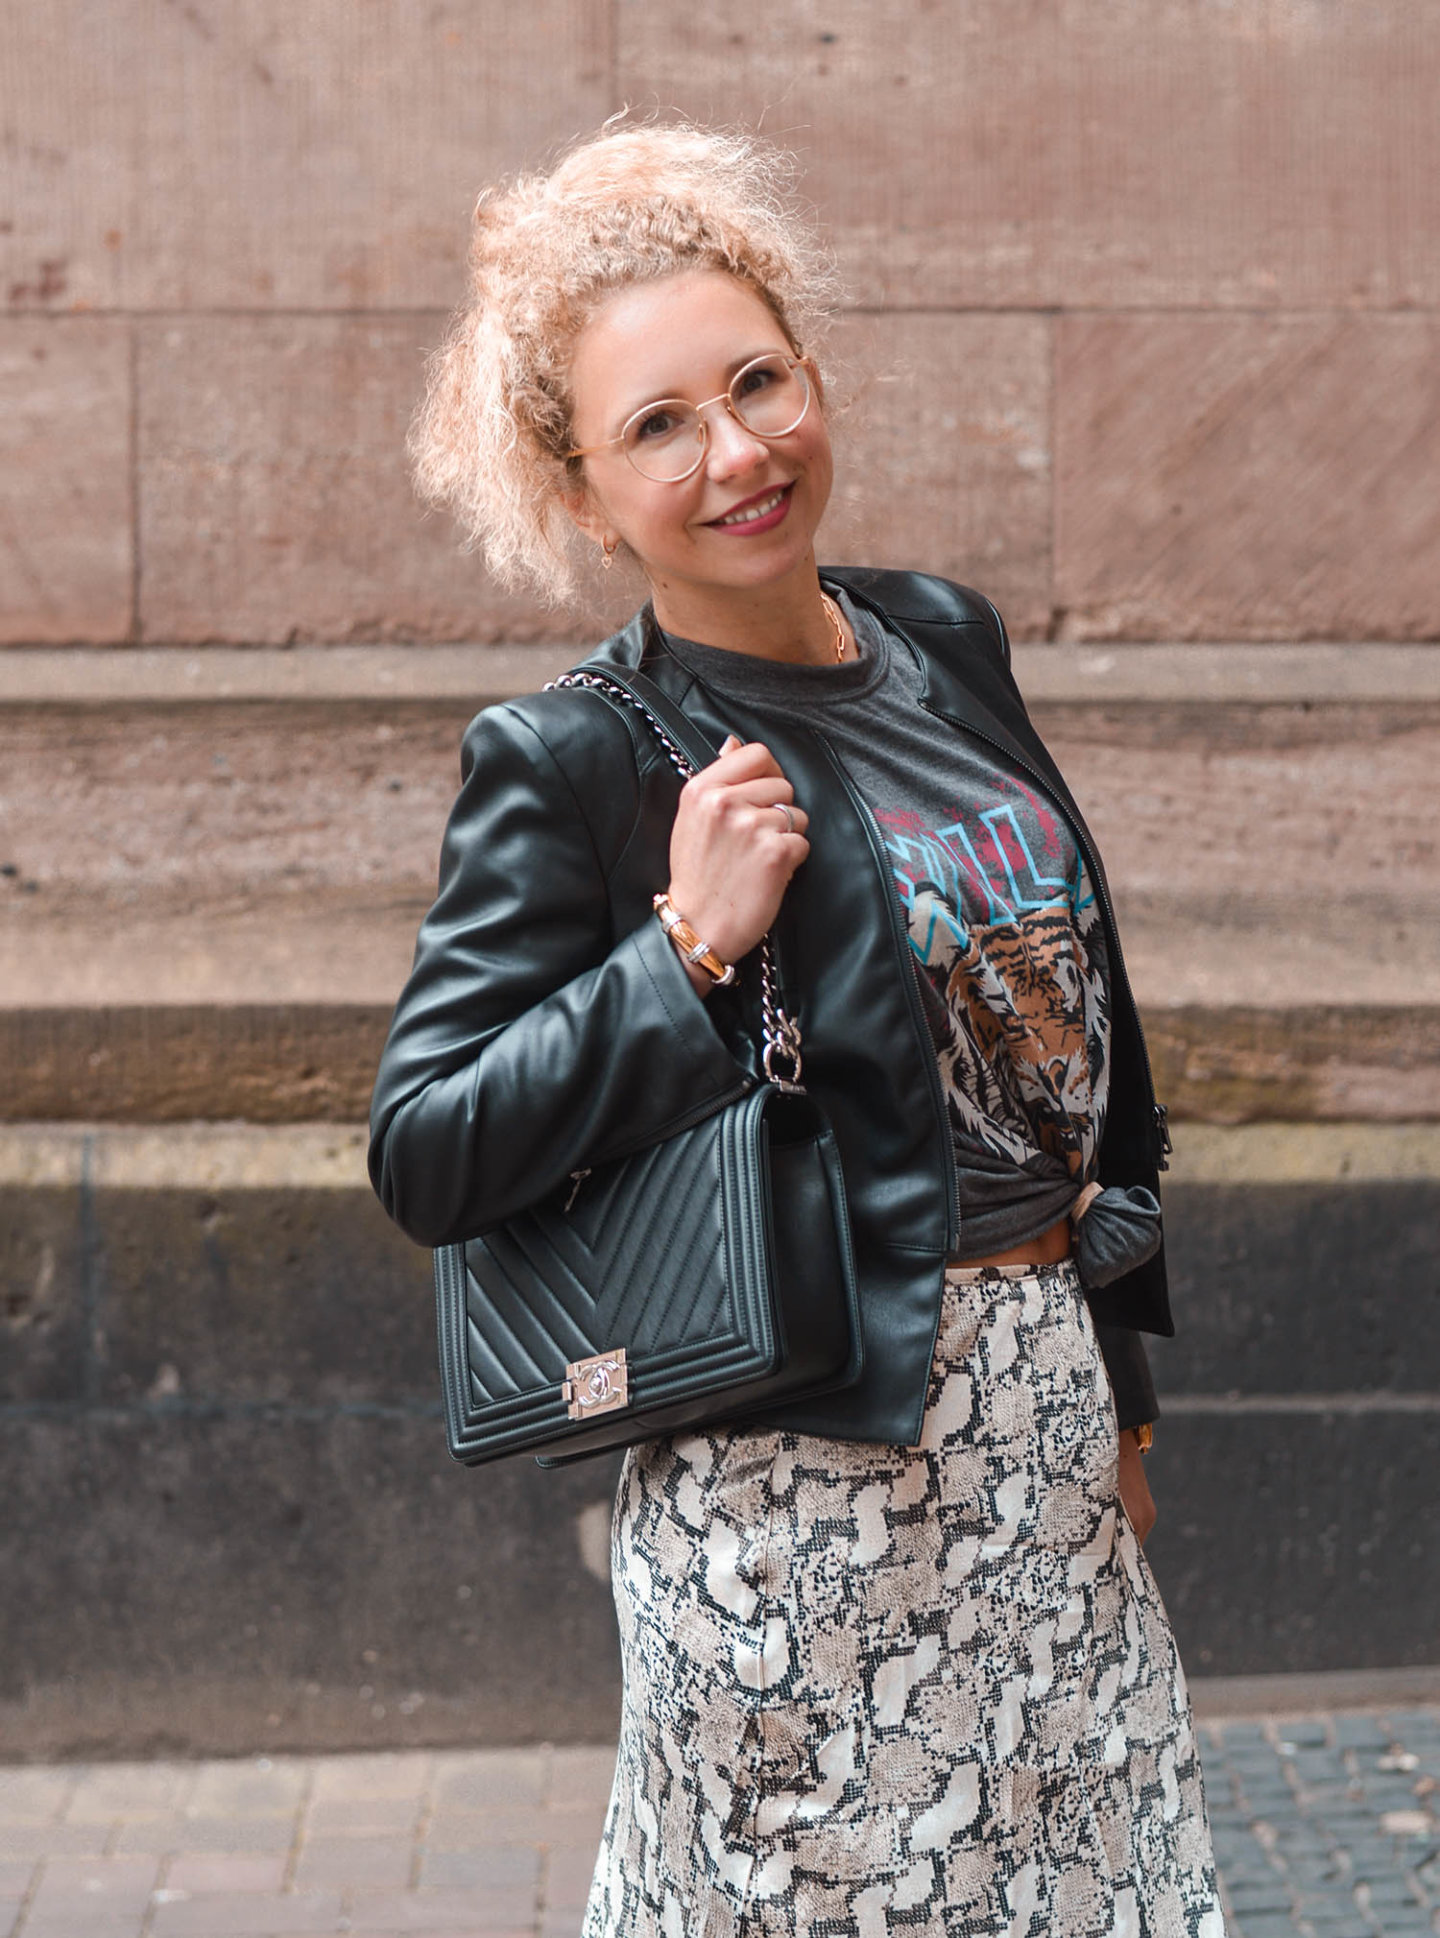 outfit-inspiration: mustermix mit rockigem shirt, satinrock mit animal-print und Chanel boy bag